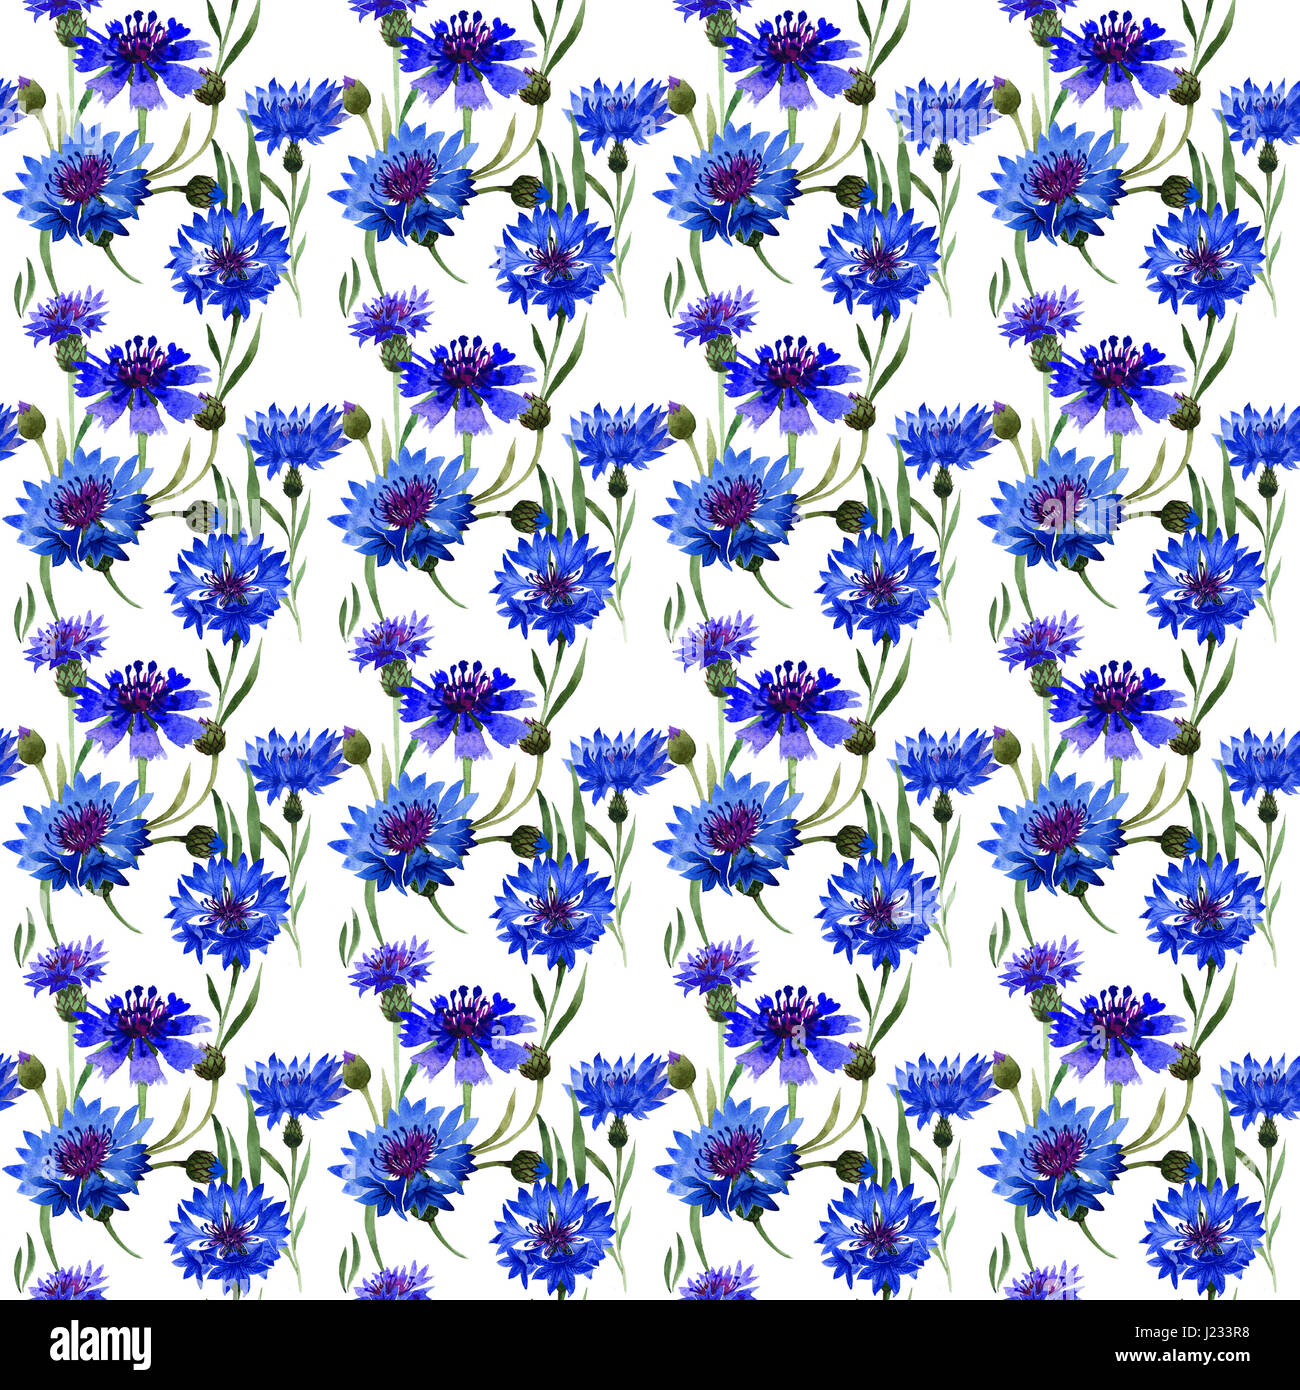 Wildflower carnation flower pattern in a watercolor style isolated. Full name of the plant: blue carnation field. - Stock Image